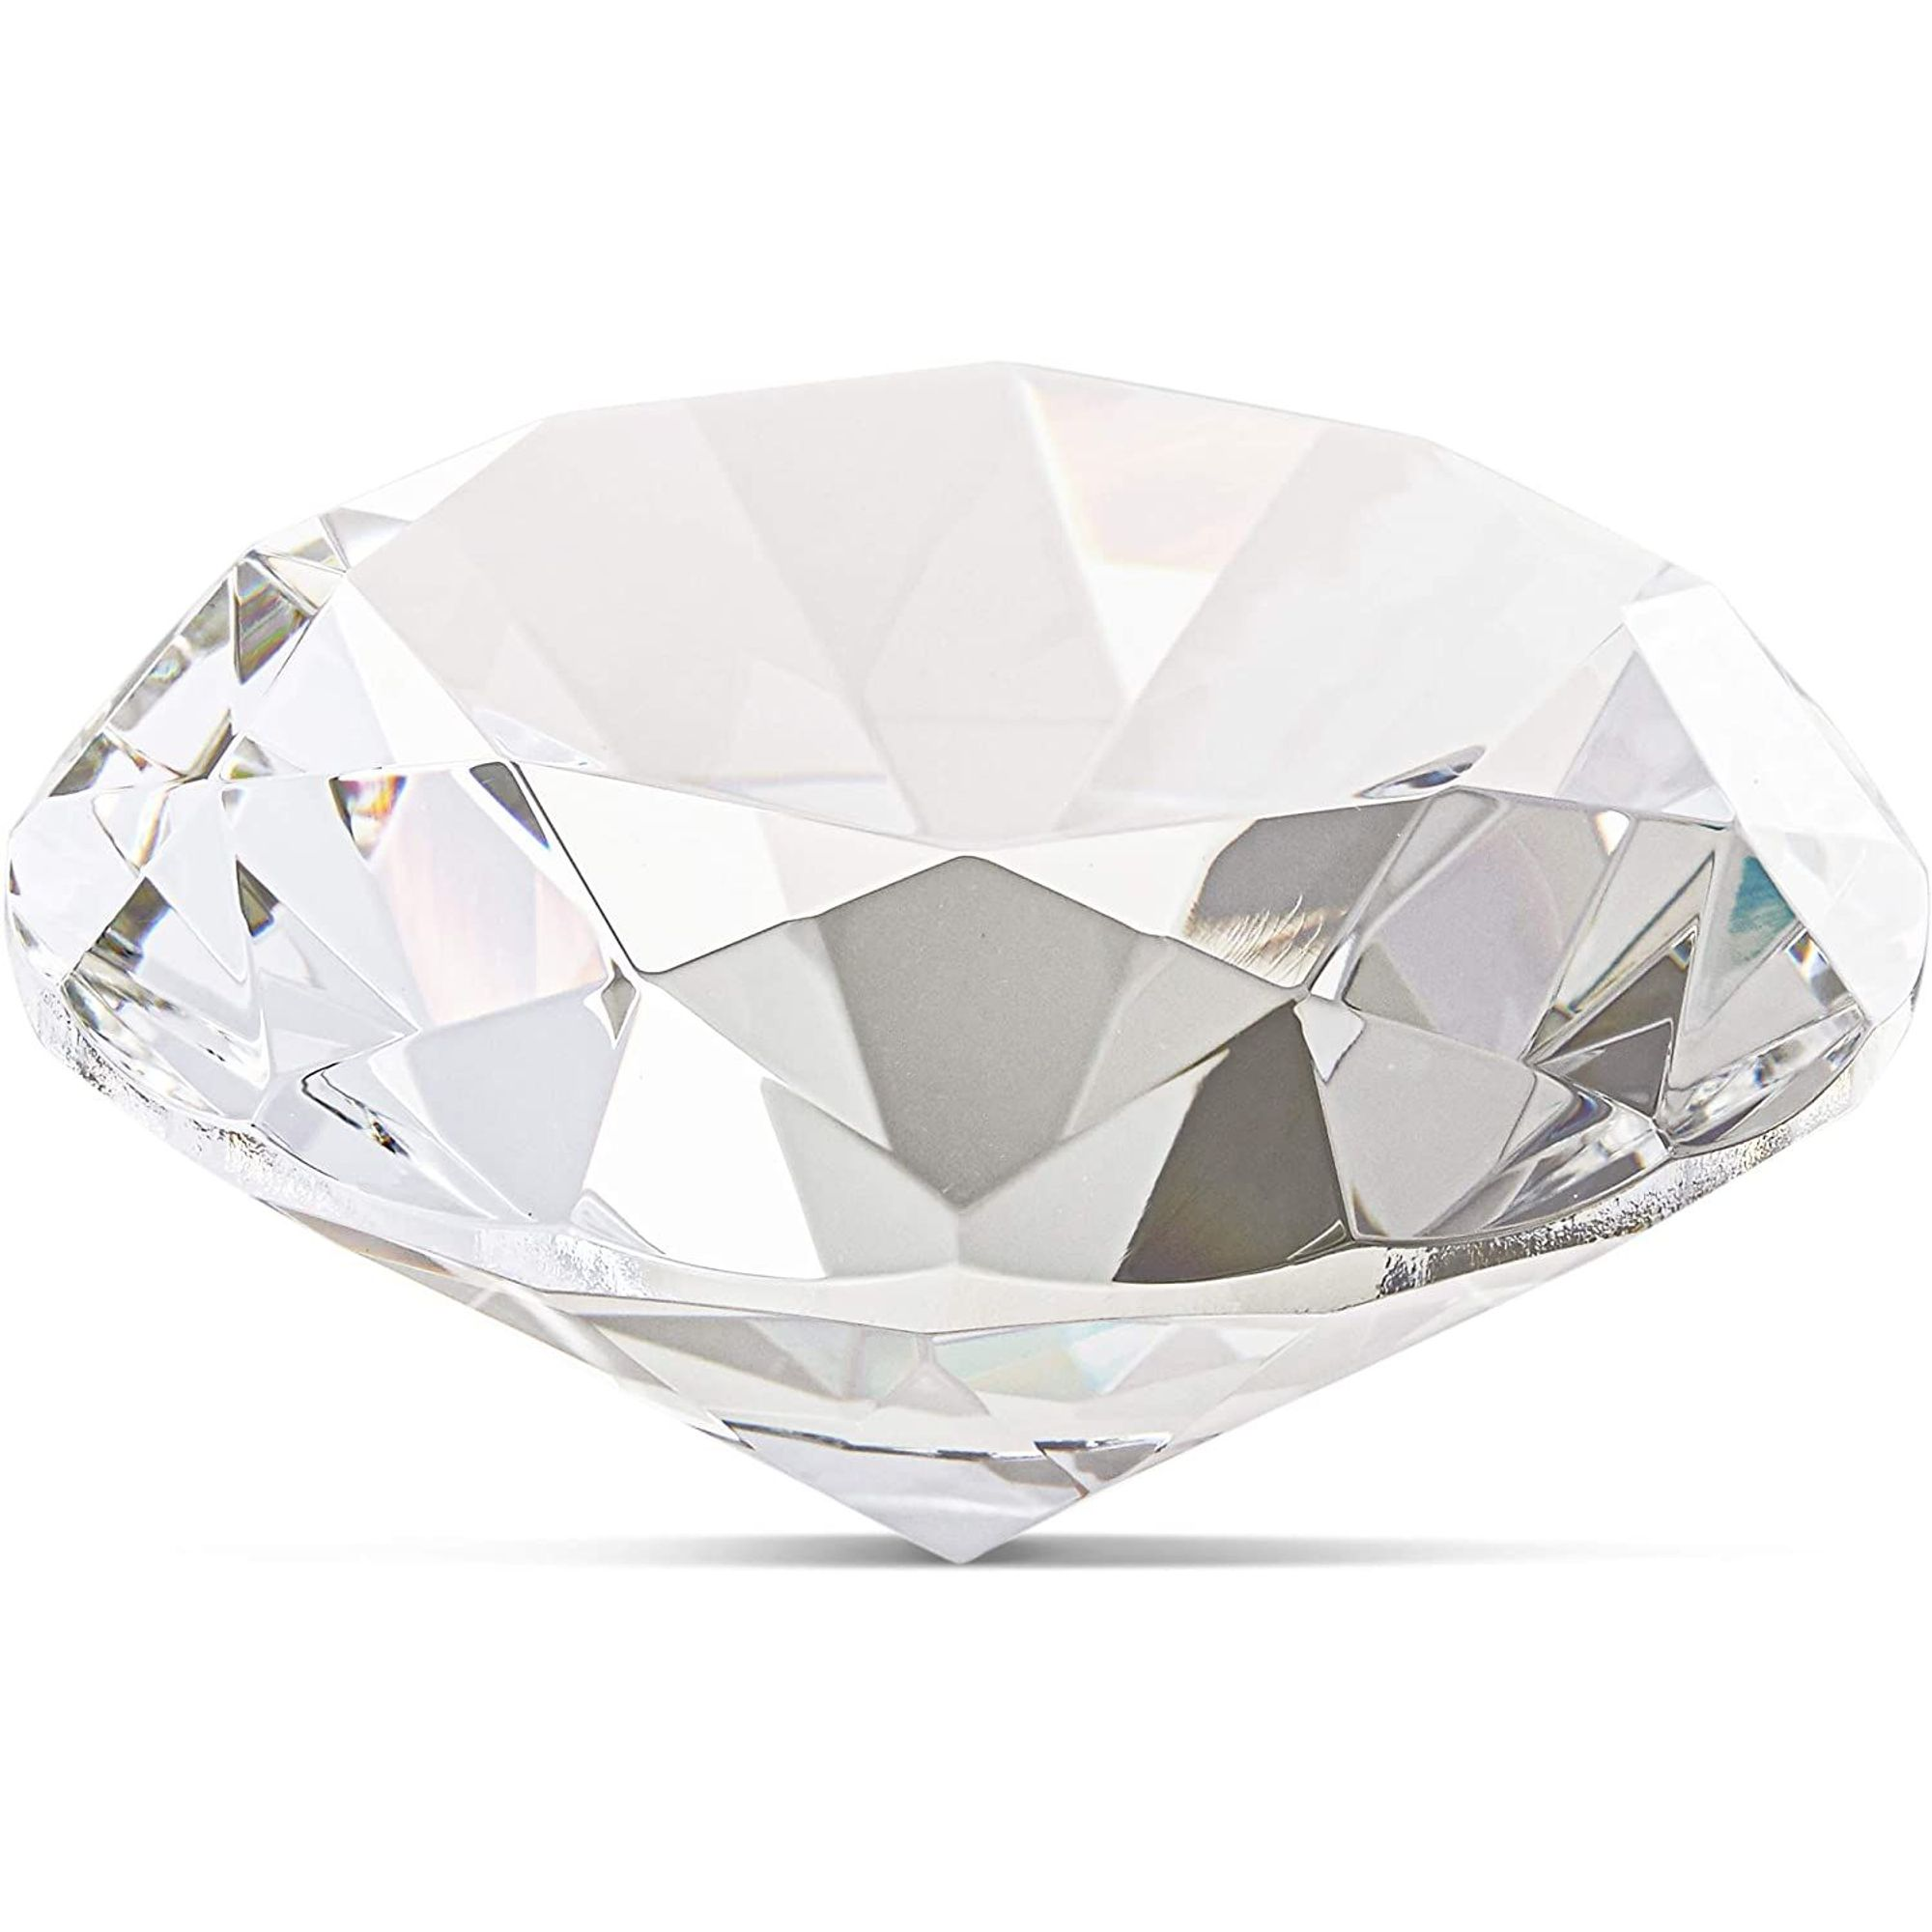 Amber Crystal Glass Diamond Shaped Decoration 100mm Jewel Paperweight,Gift Decoration Idea for Christmas